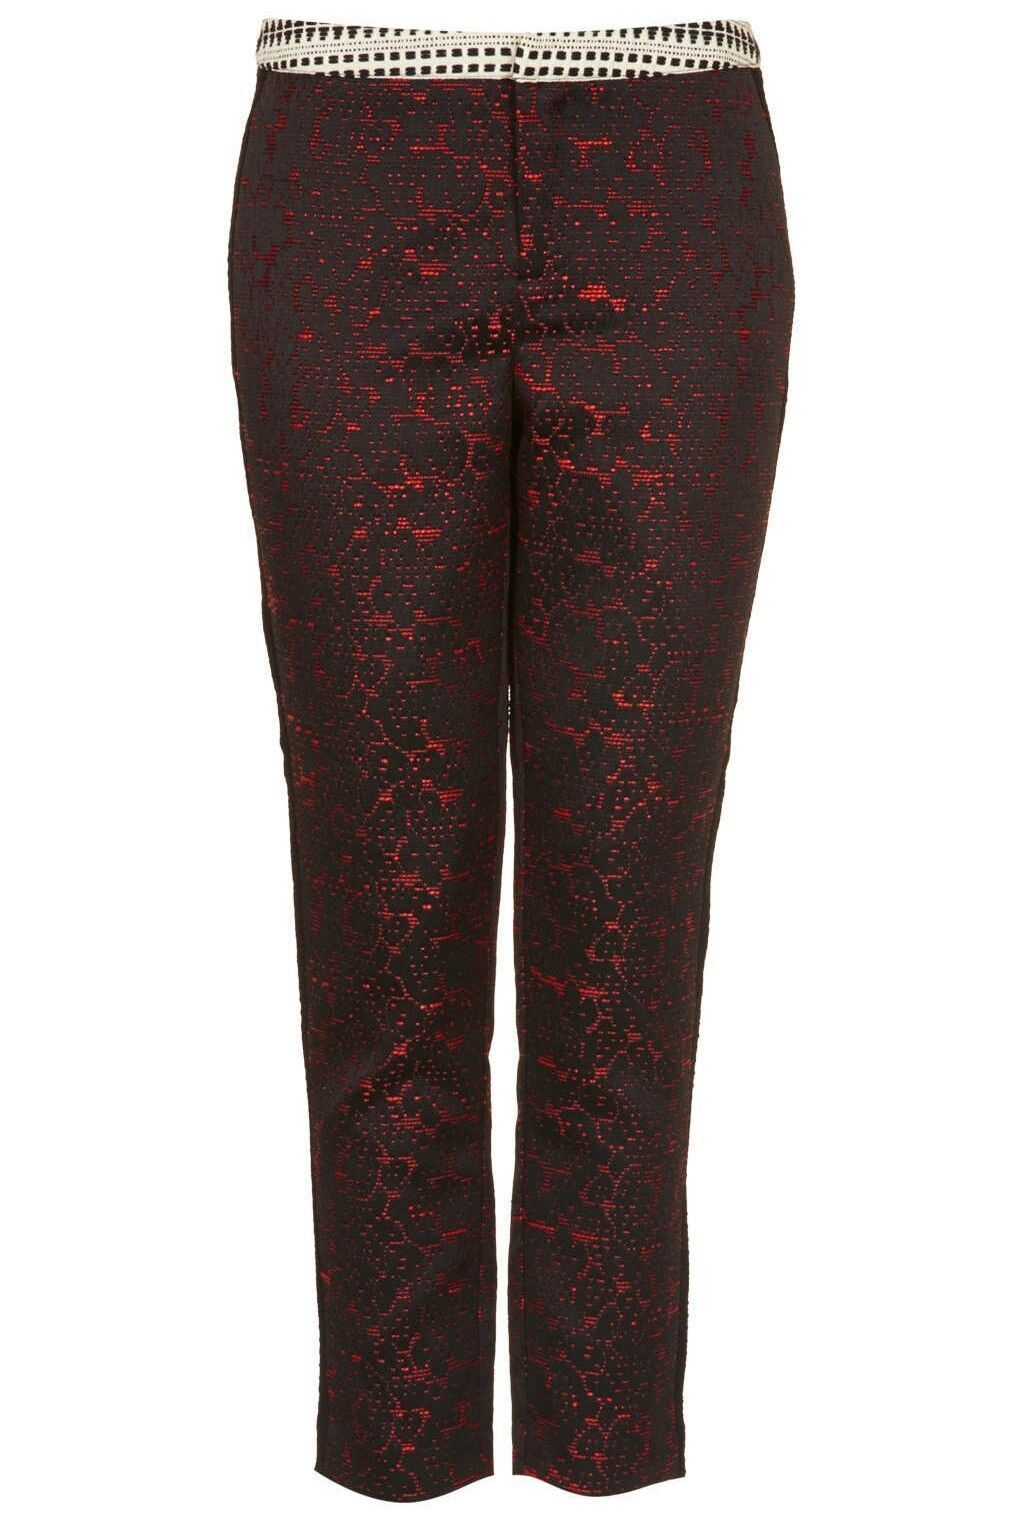 Topshop Jacquard Cigarette Trousers SIZE UK10 EUR38 US6 TALL RRP